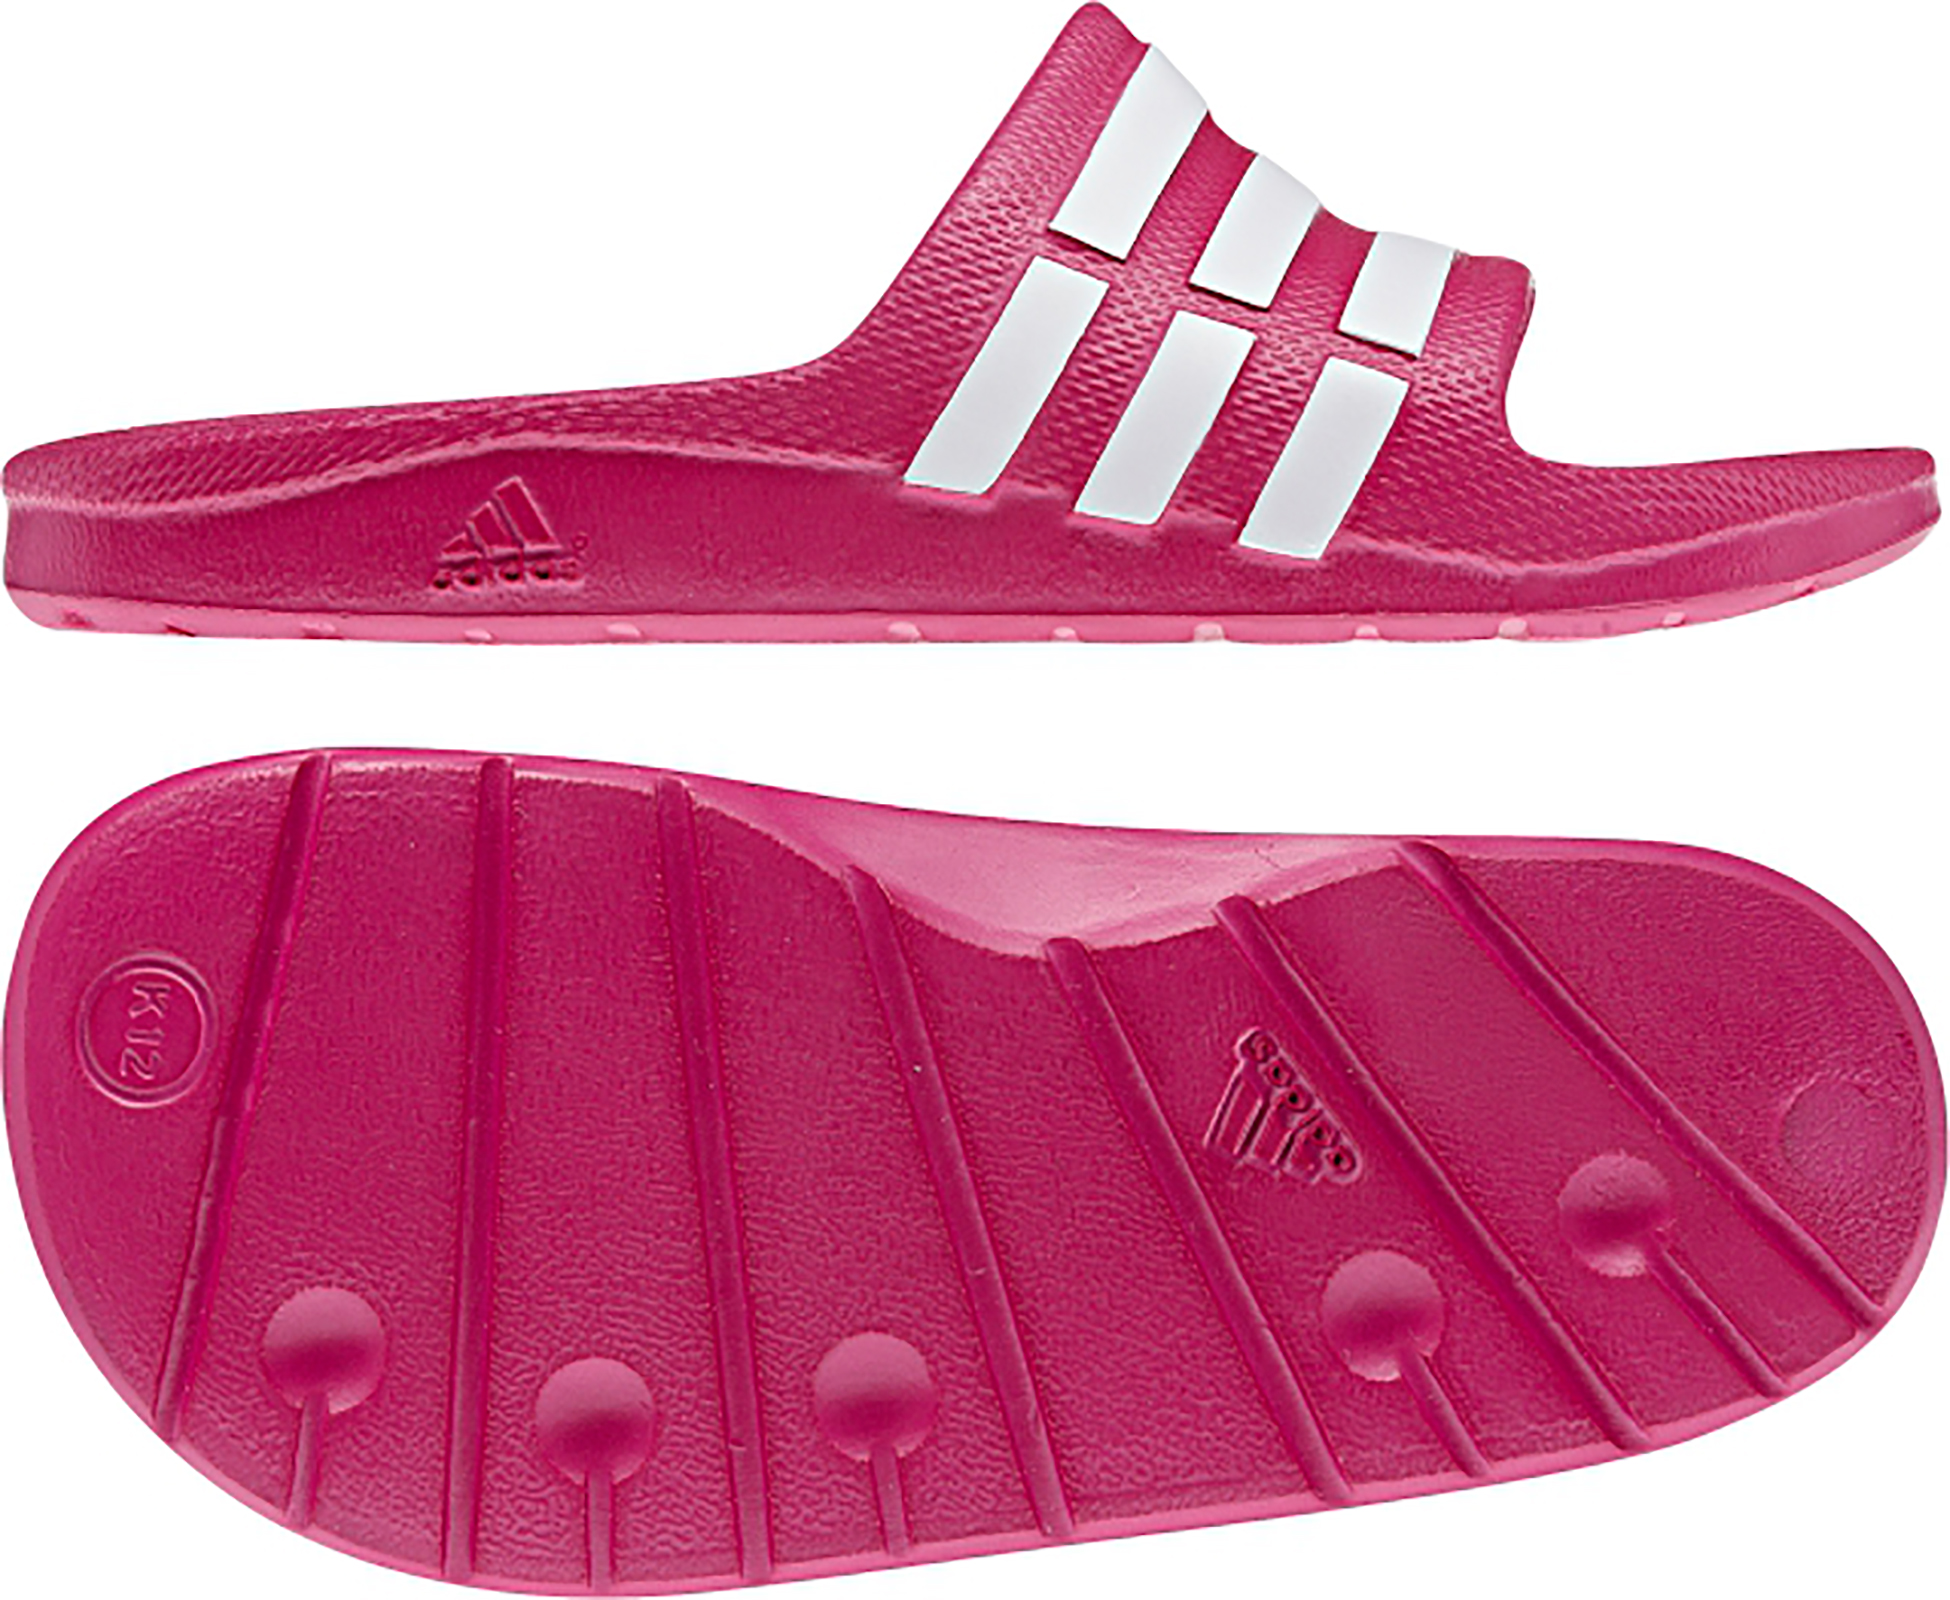 timeless design 8a1df d6f23 Tongs  adidas  Duramo Slides Sandals (Junior)  Wiggle France